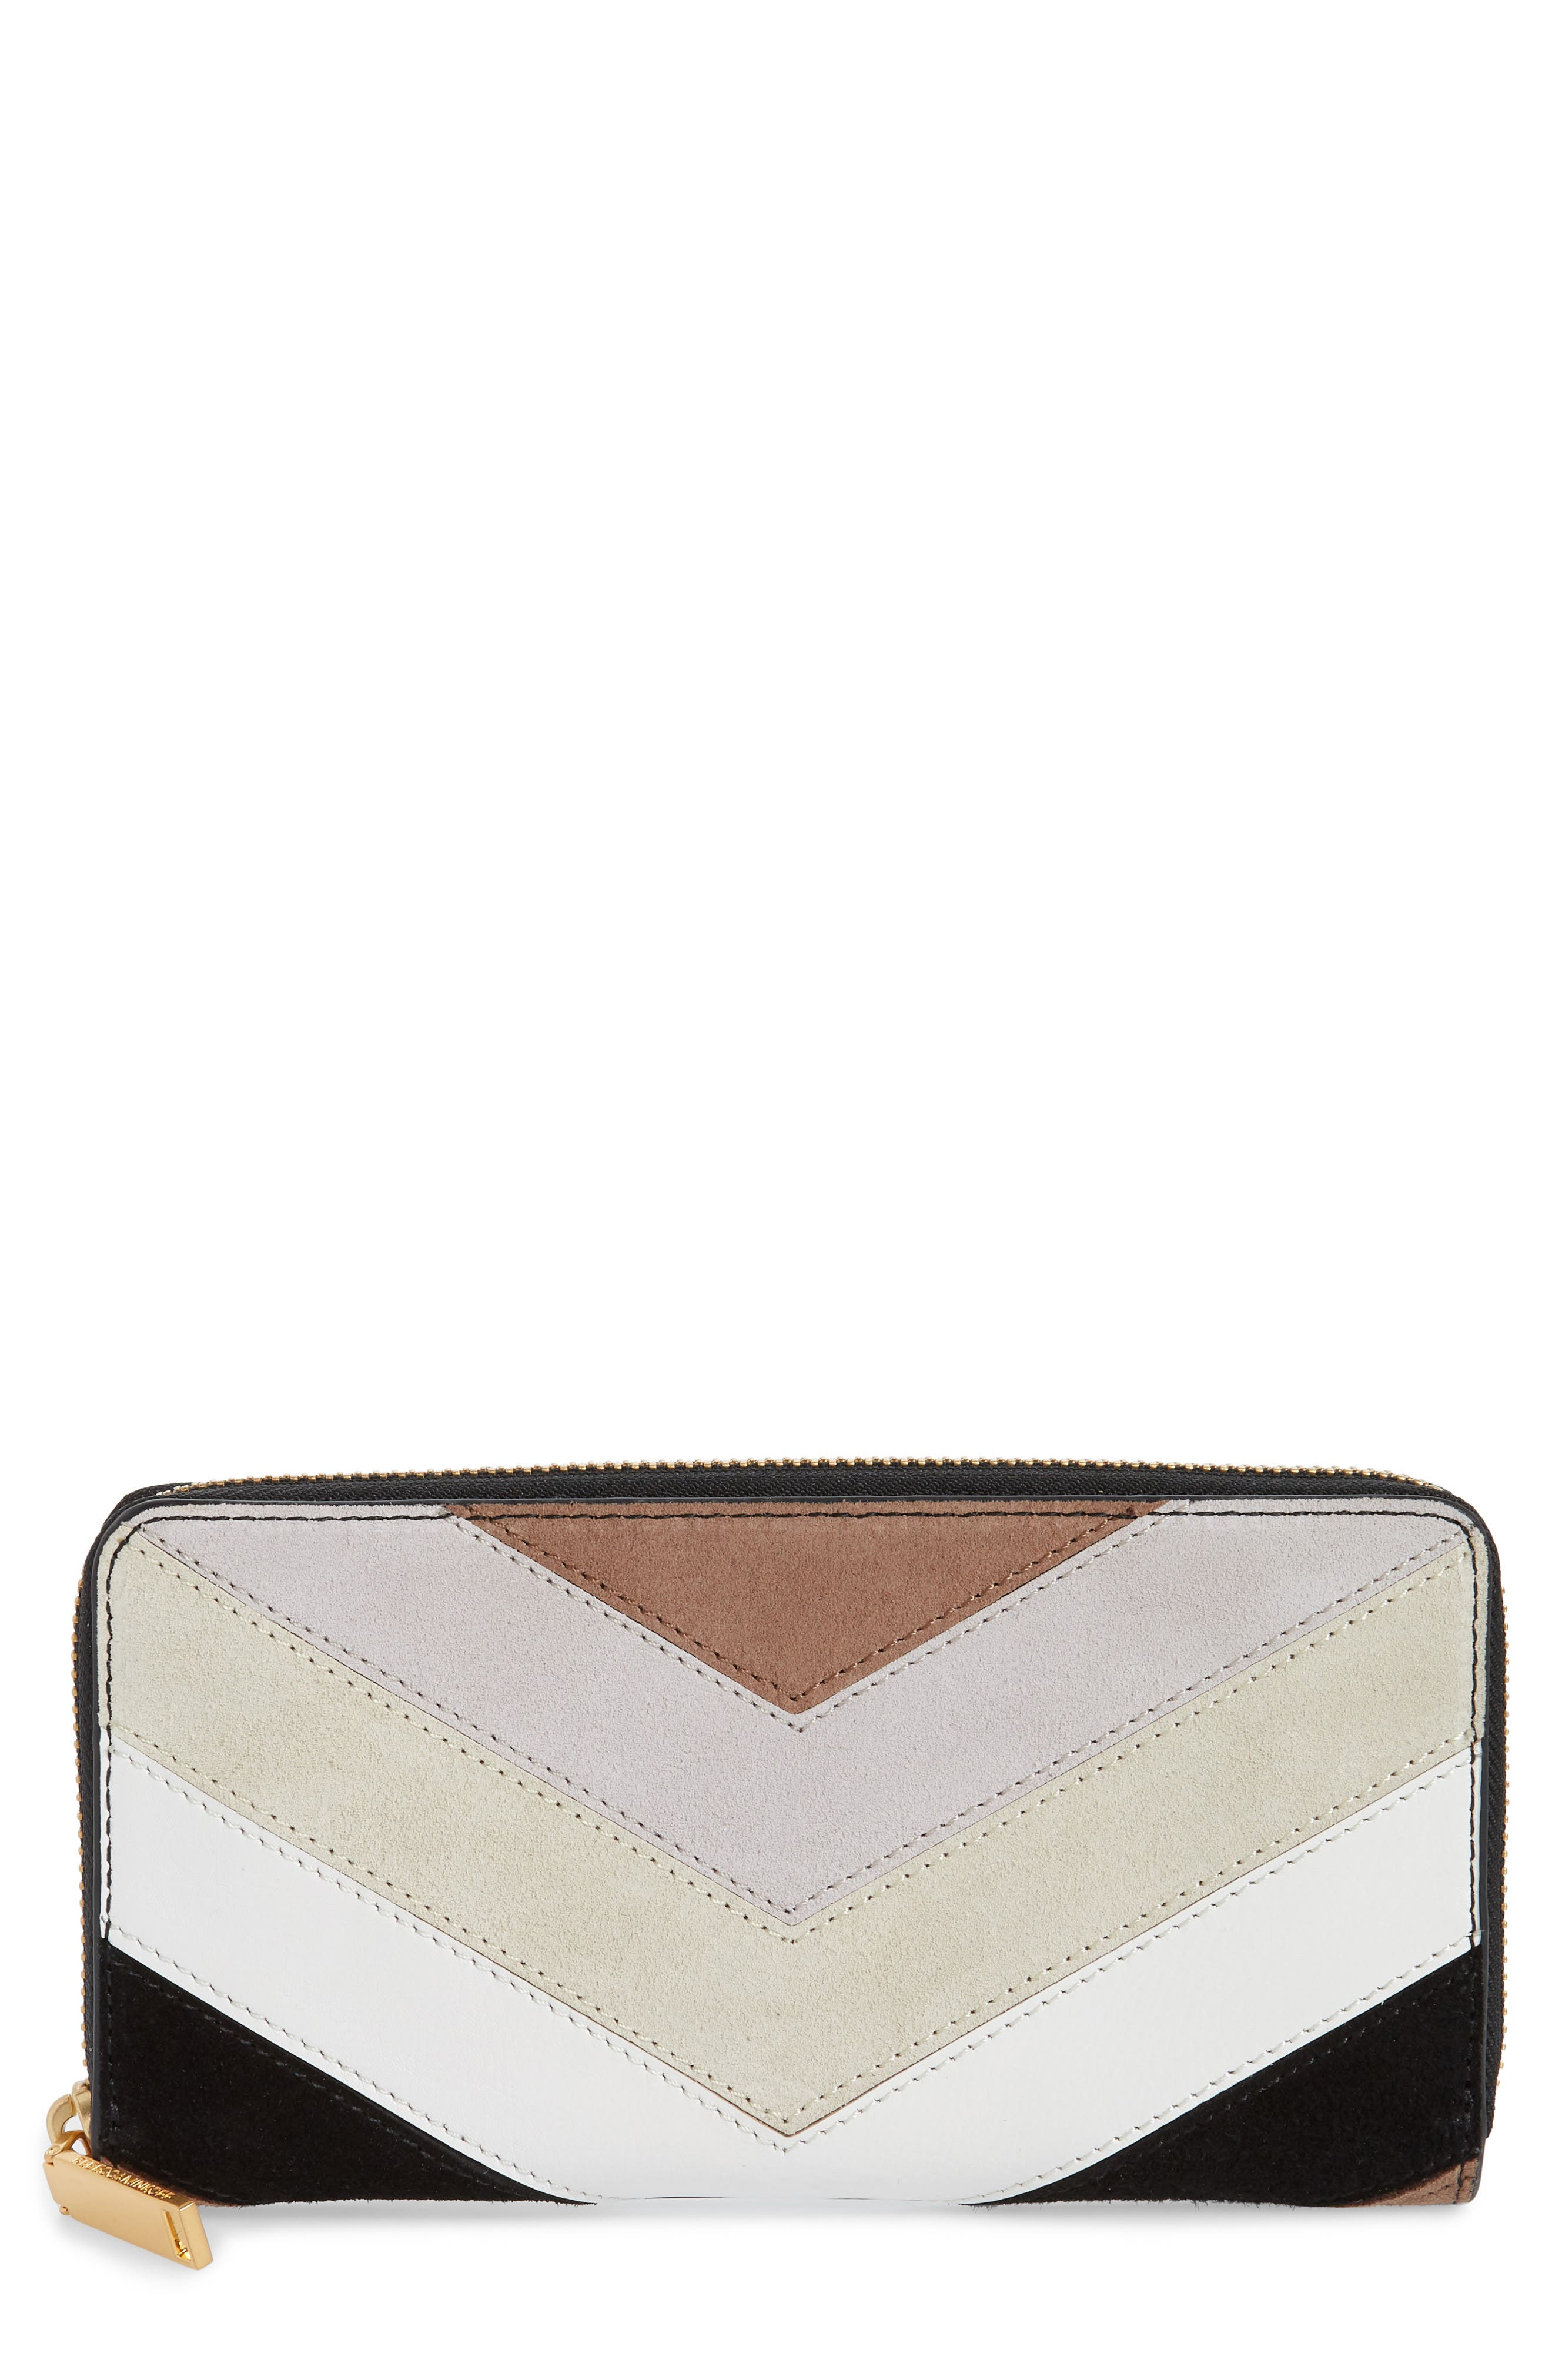 Chevron Quilted Suede Continental Wallet,                         Main,                         color, Taupe Multi